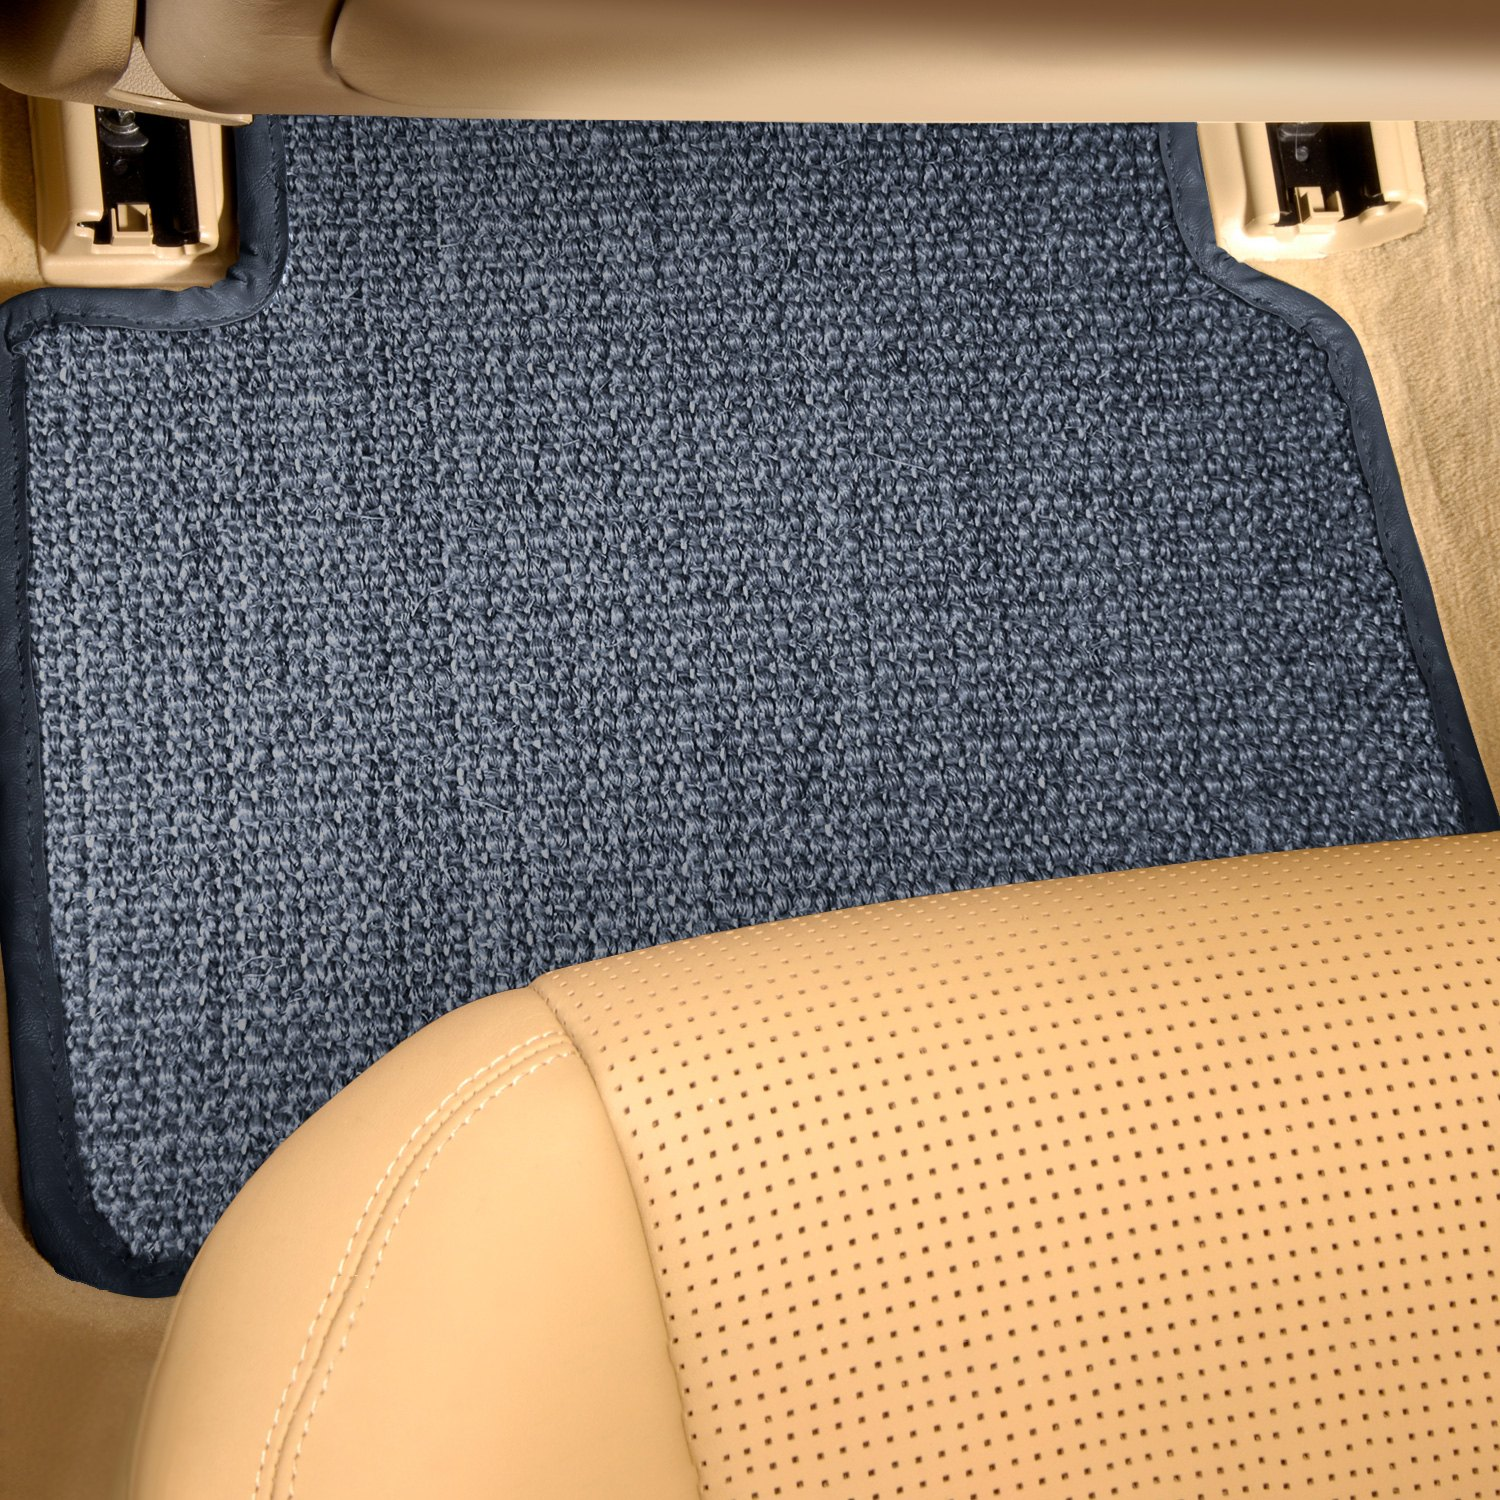 buy cheap Designer Mat® DD-391R-SI-0430-2PRST-NB-NL - Sisal Auto Mat™ 2nd Row Blue Carpeted Floor Mats for 2015 RAM 1500 TRUCK Ebay & Amazon